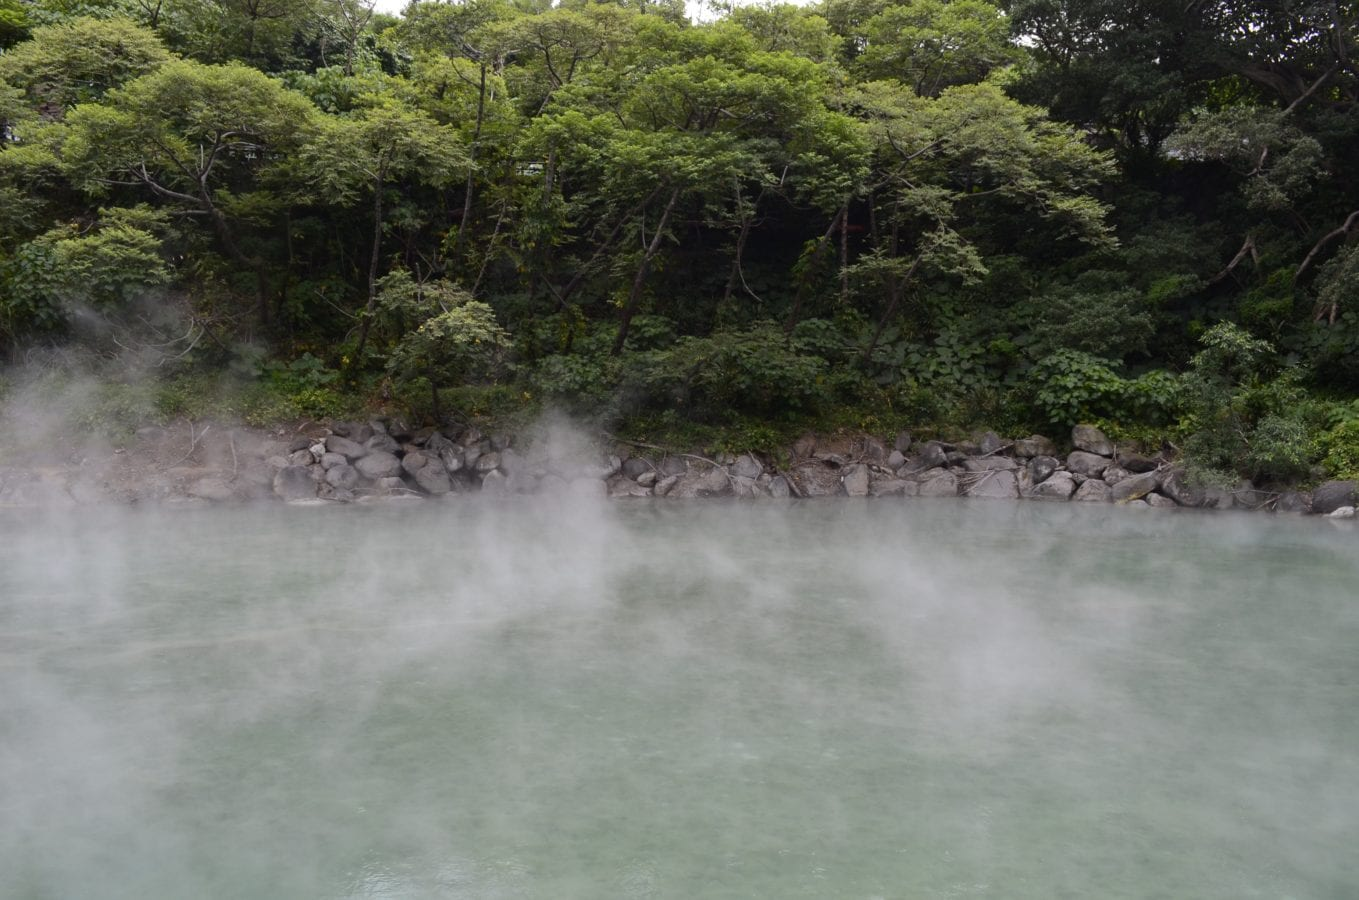 The hot springs in Taipei's Beitou district